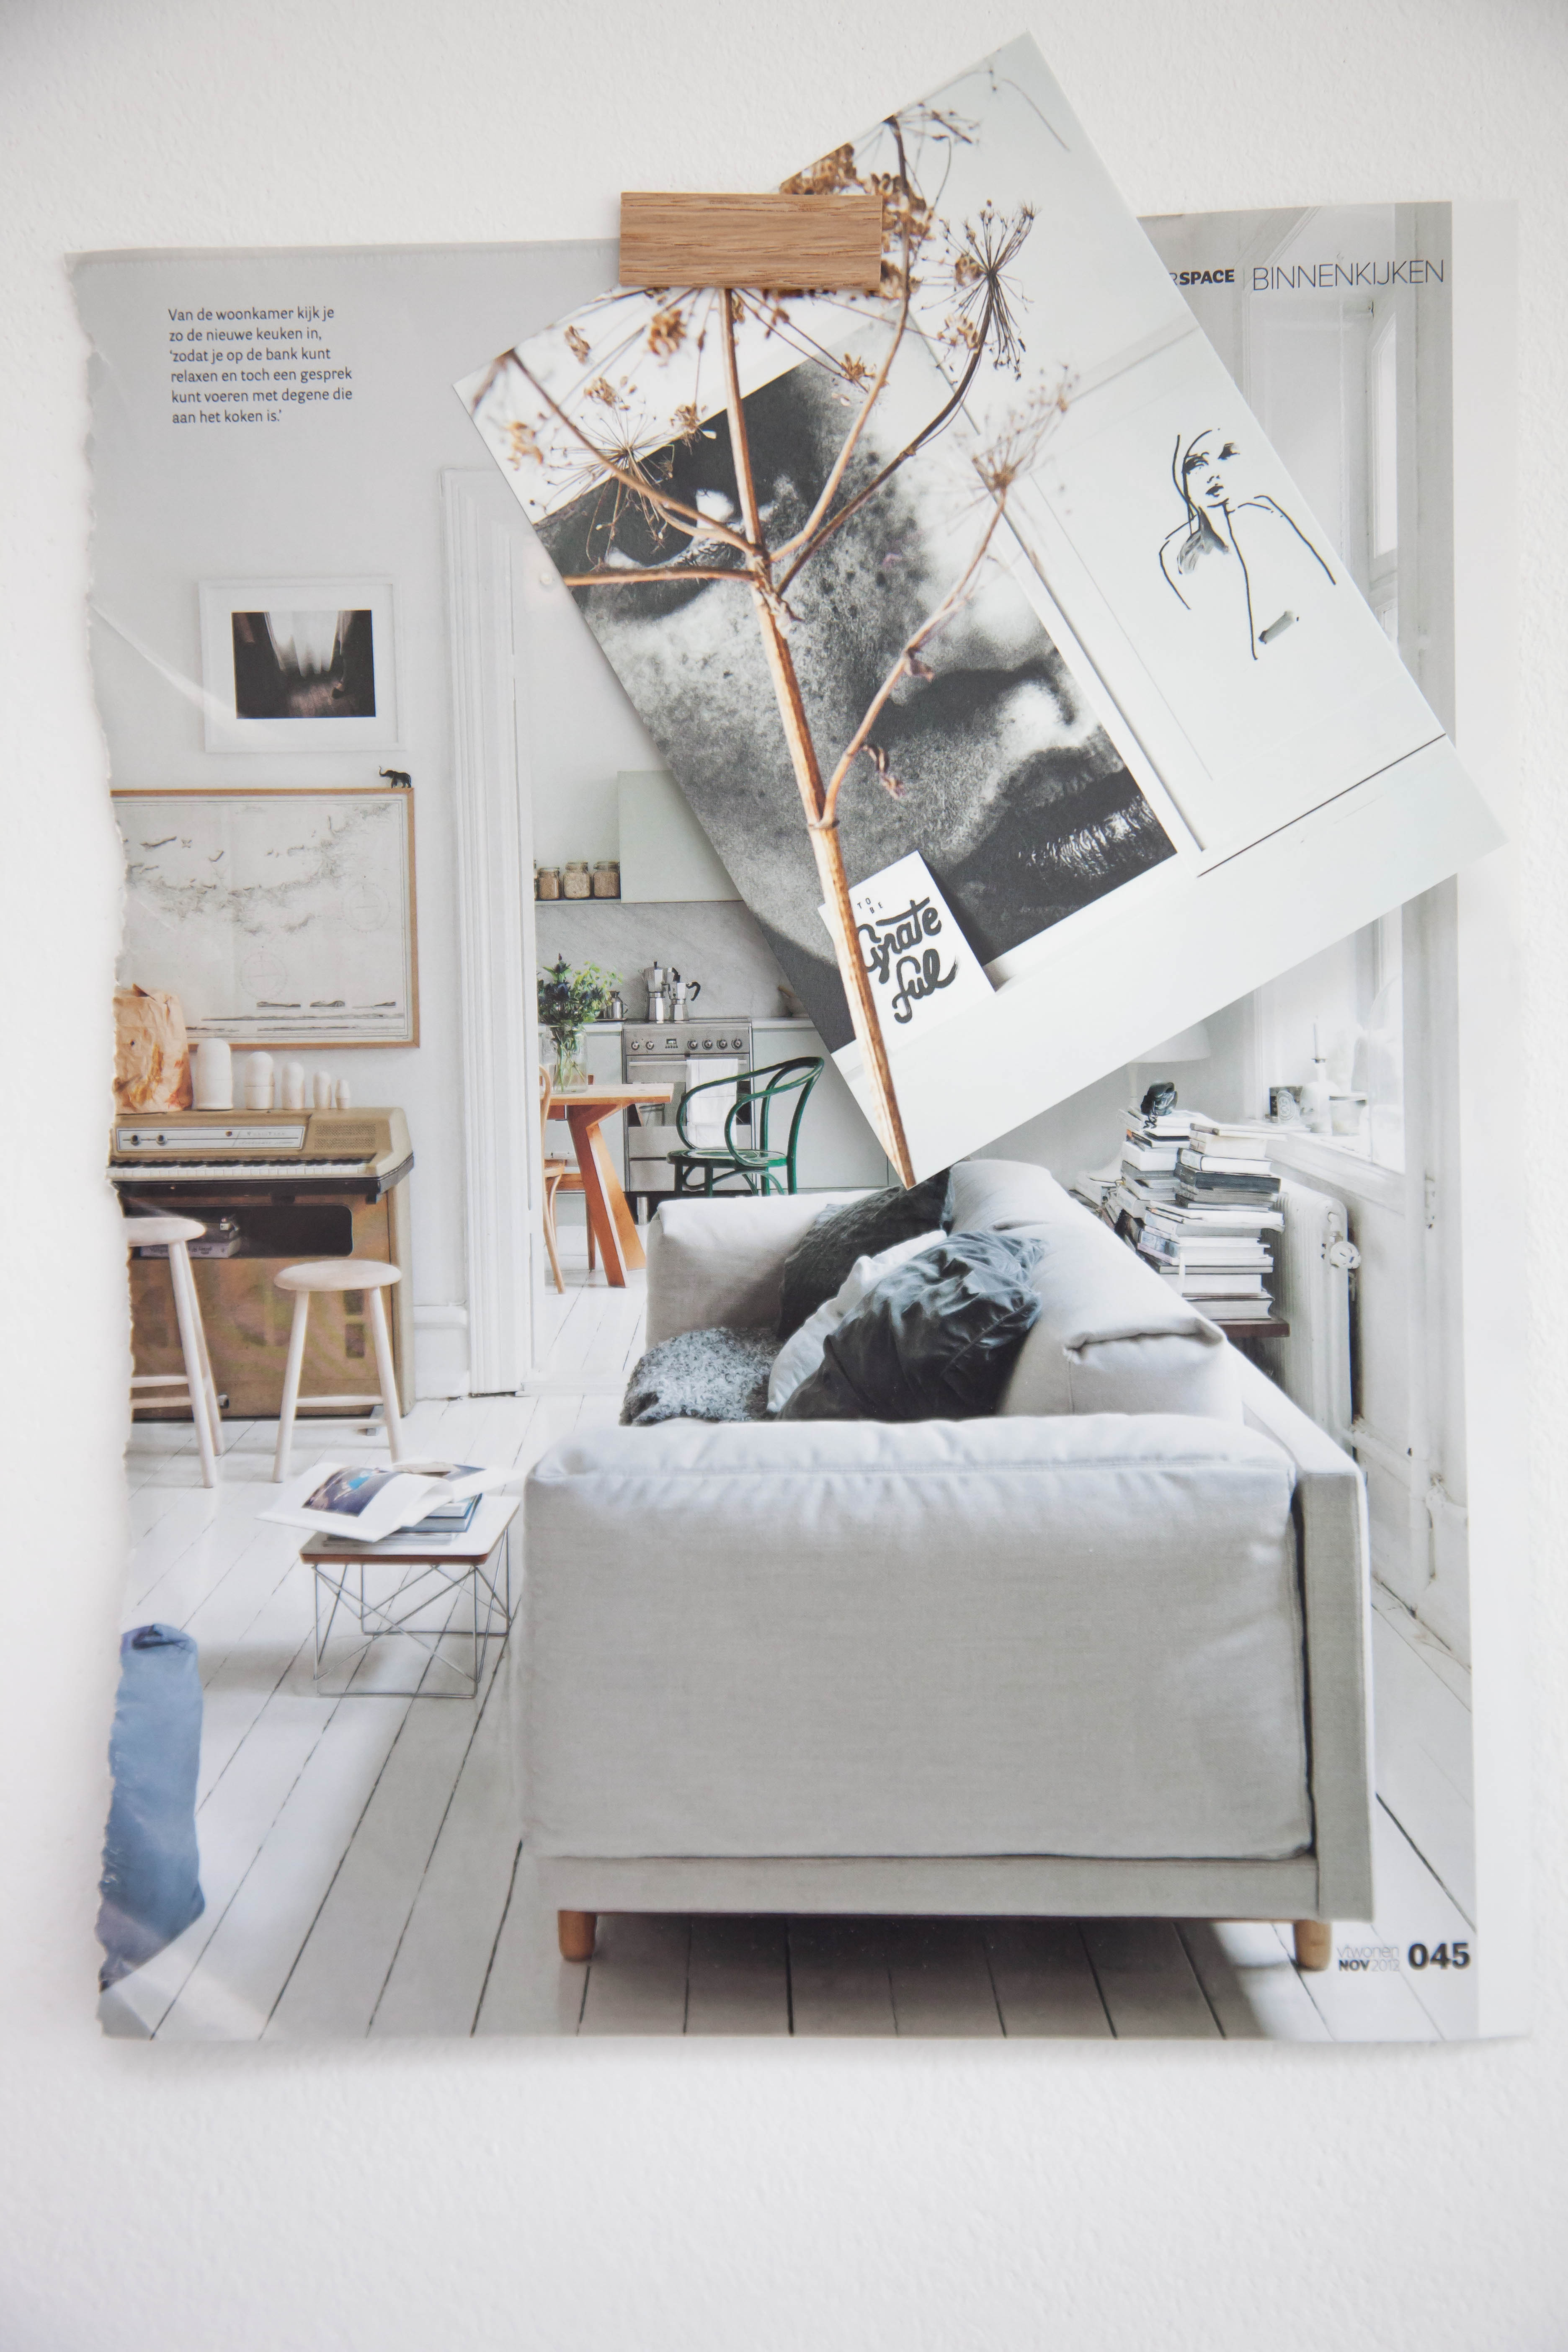 Studio Makeover: Before & After! - Avenue Lifestyle Avenue Lifestyle